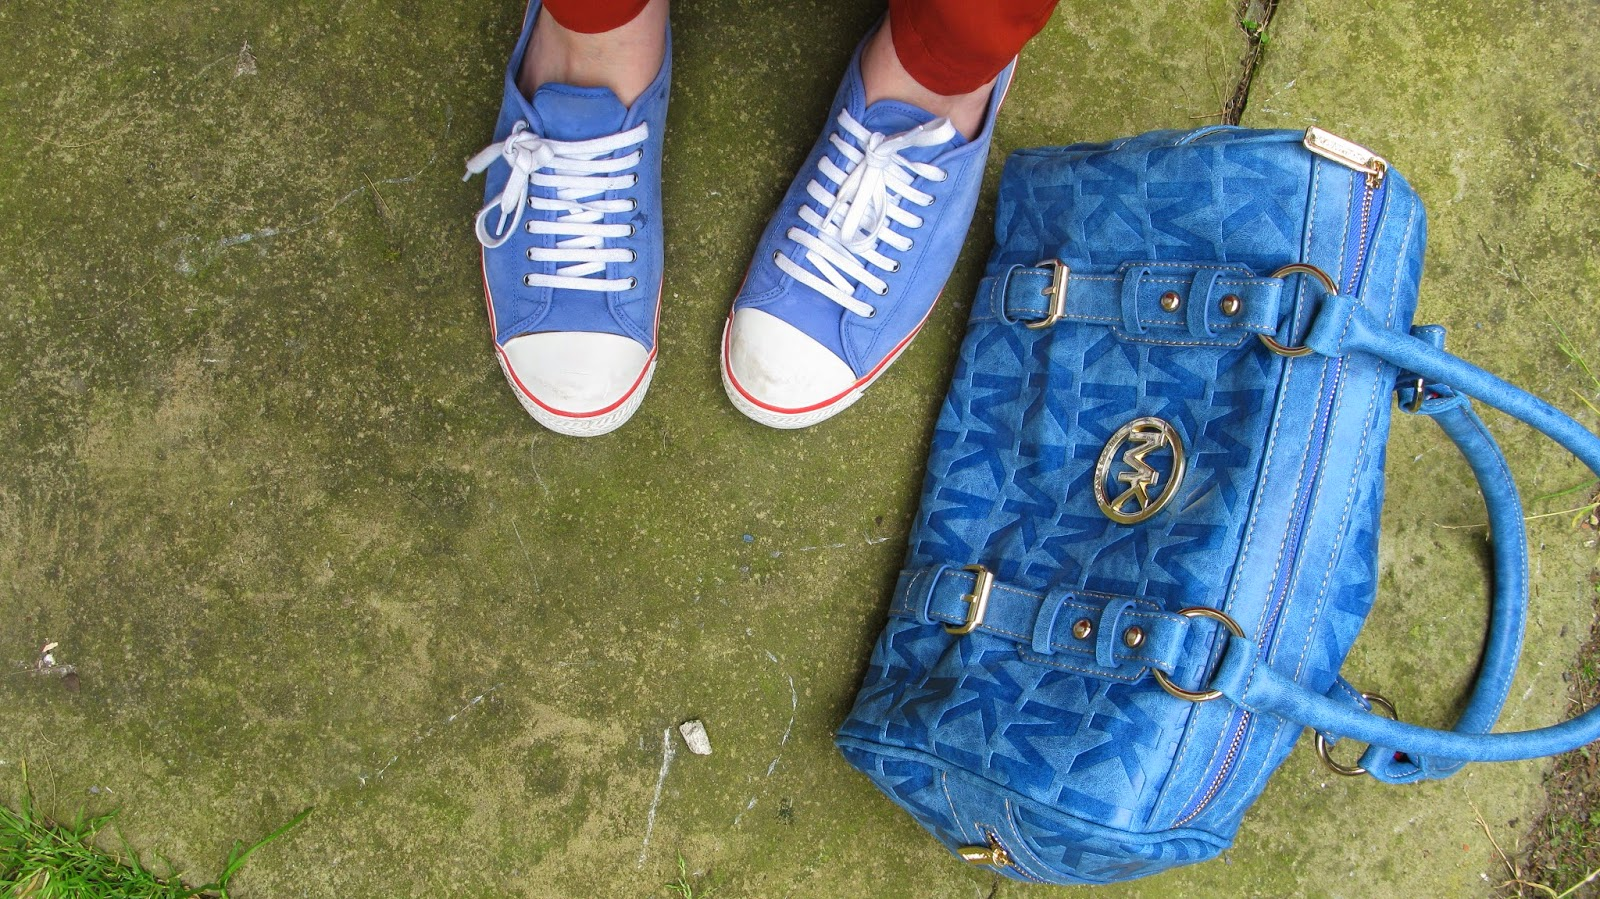 Blue Michael Kors bag, blue kurt geiger trainer pump shoes uk fashion blog